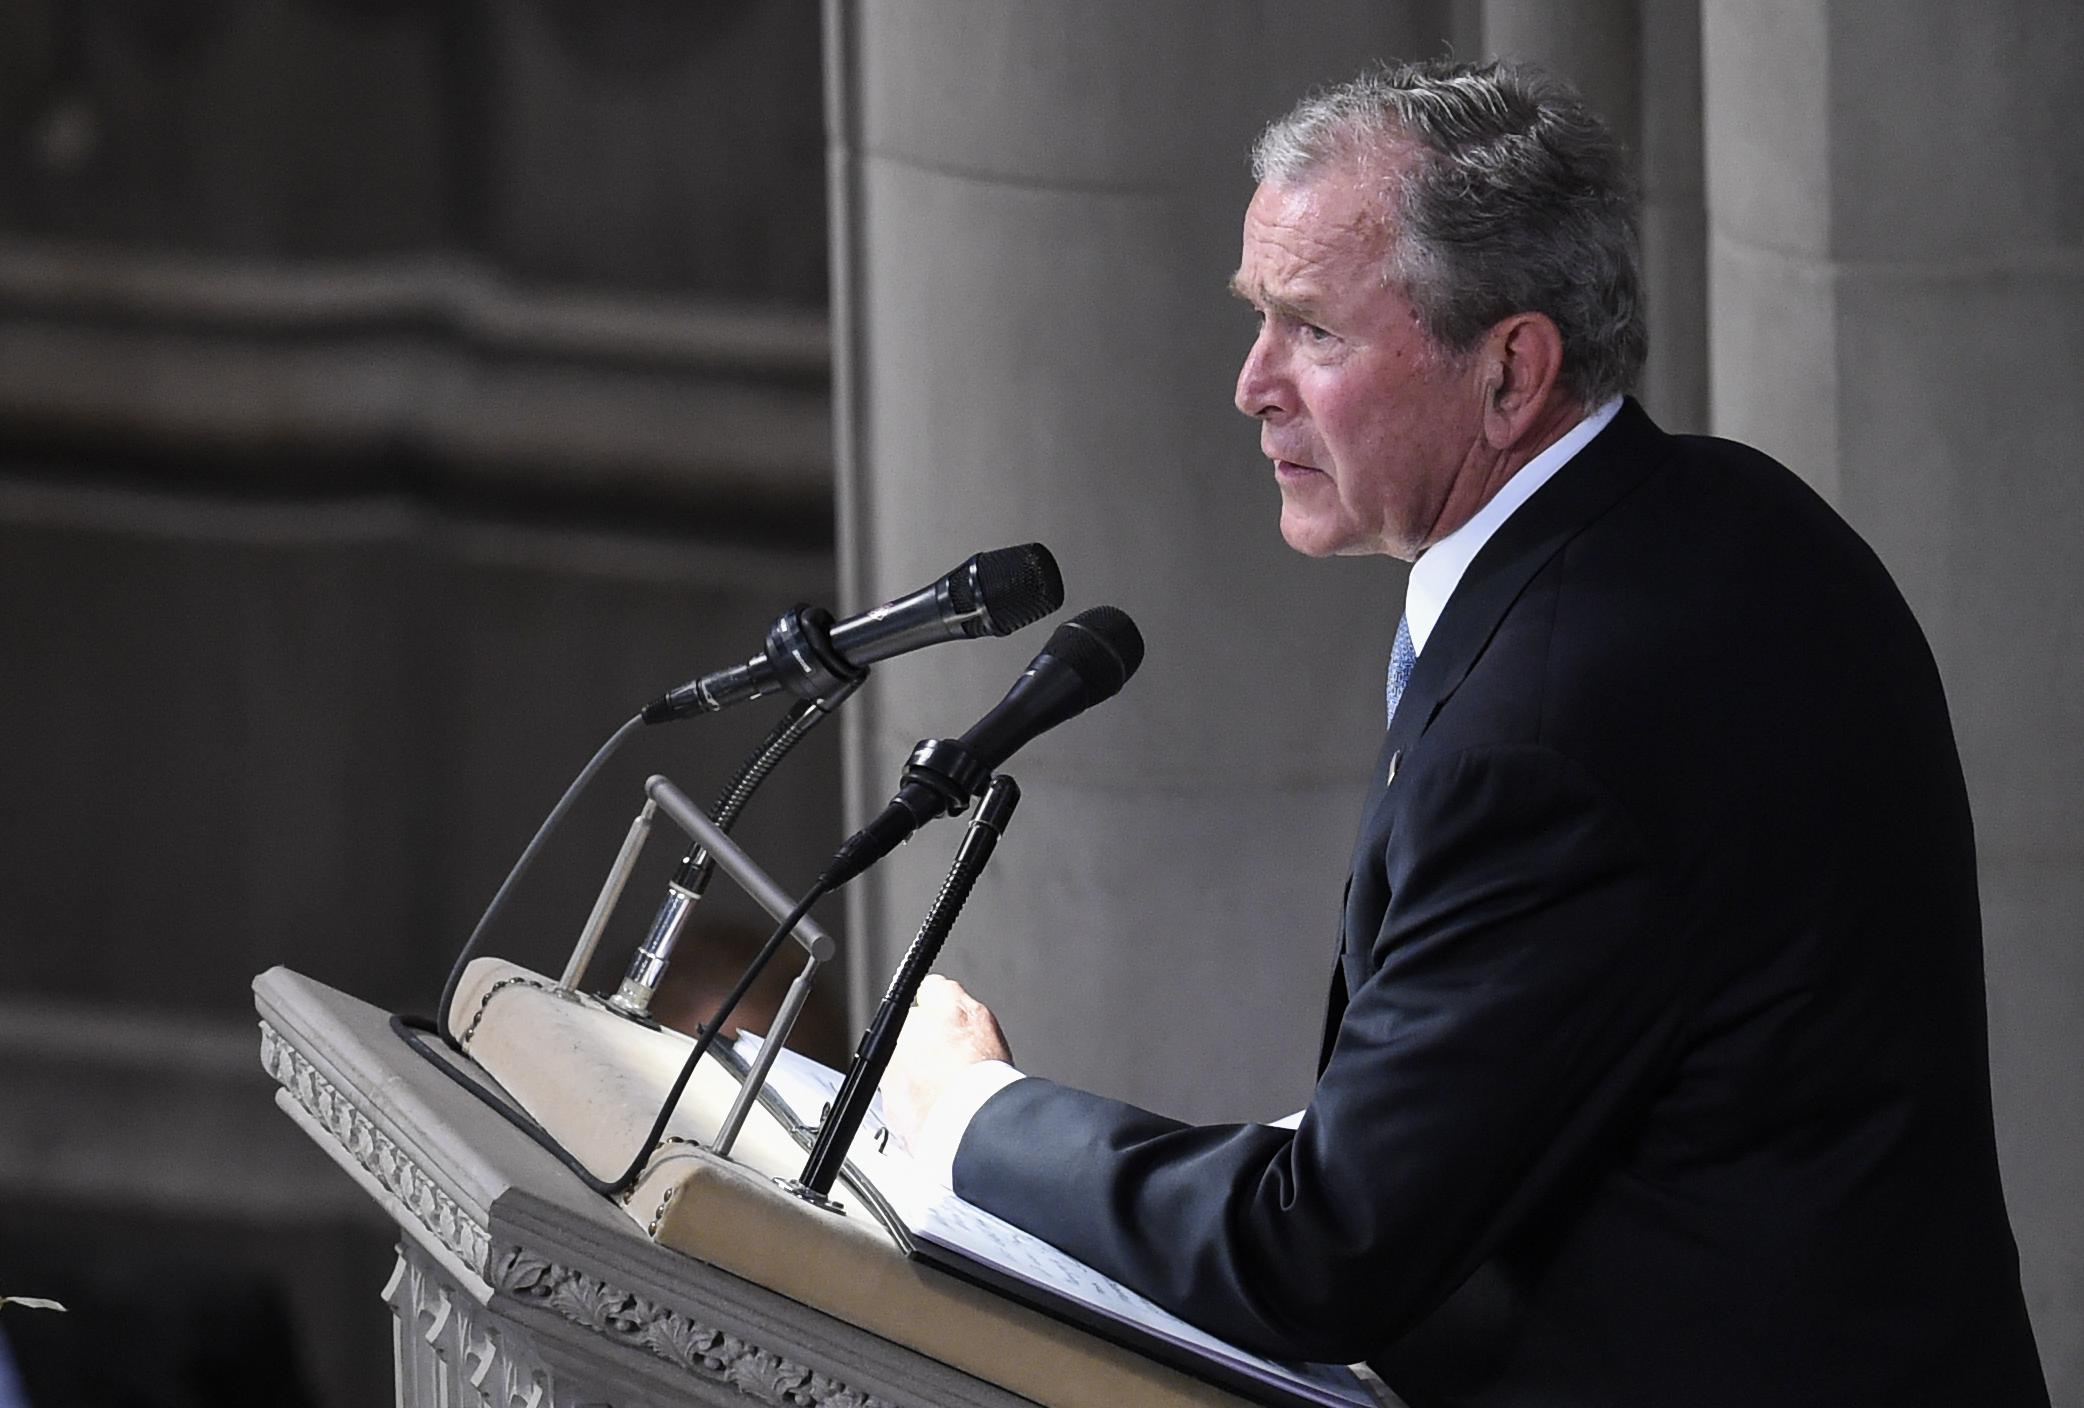 Former President George W. Bush speaks during a memorial service for Senator John McCain at the Washington National Cathedral in Washington, D.C., on September 1, 2018.